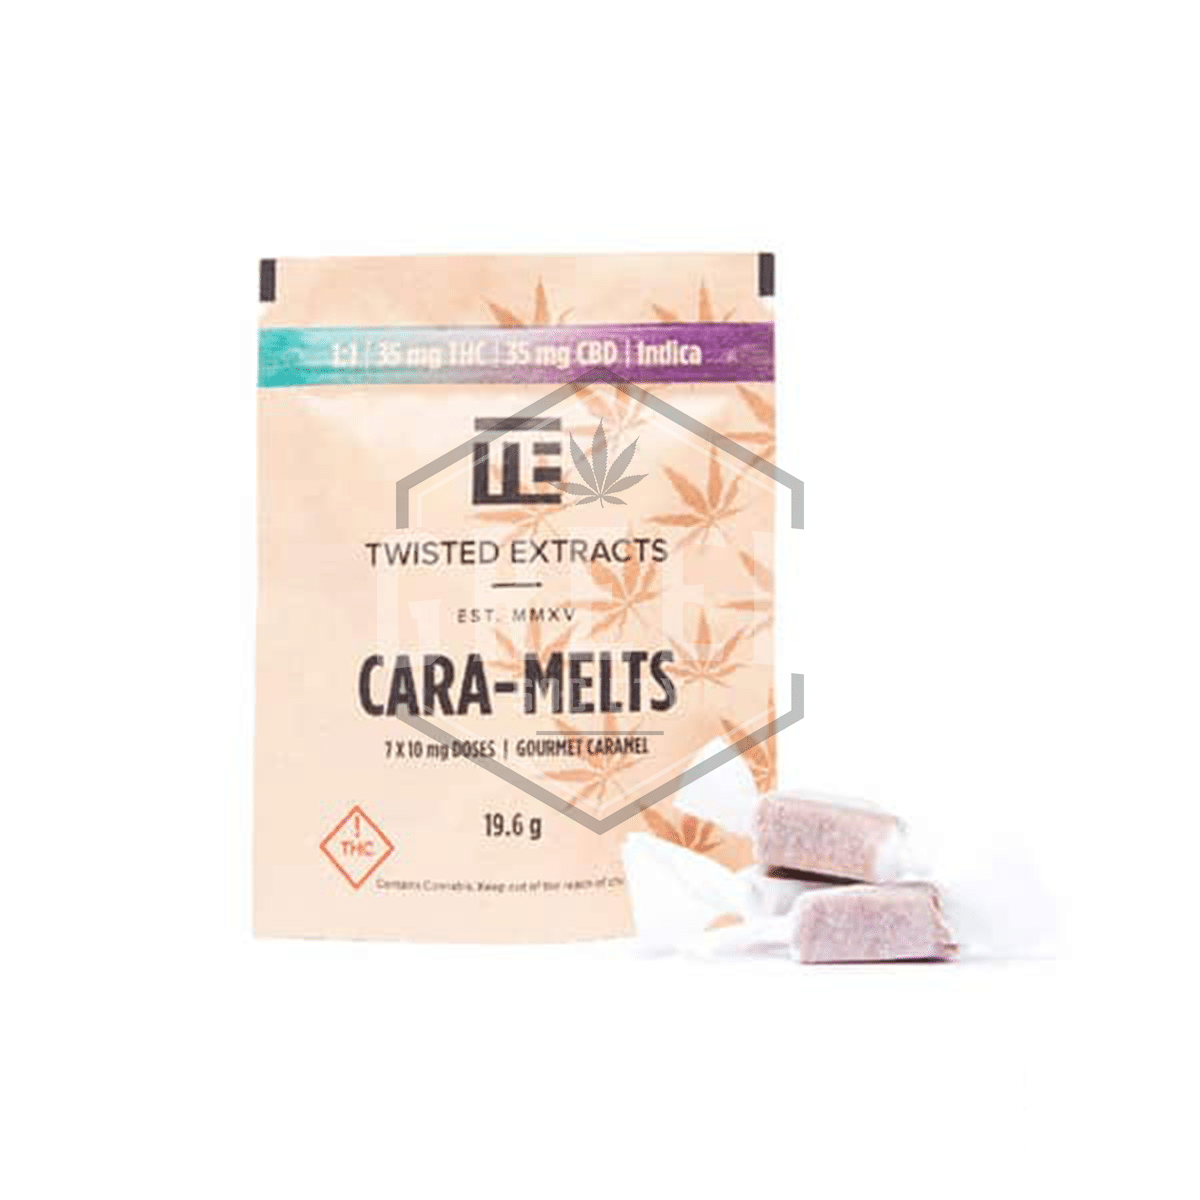 Indica 1:1 Cara-Melts by Twisted Extracts by Green Society - Image © 2019 Green Society. All Rights Reserved.